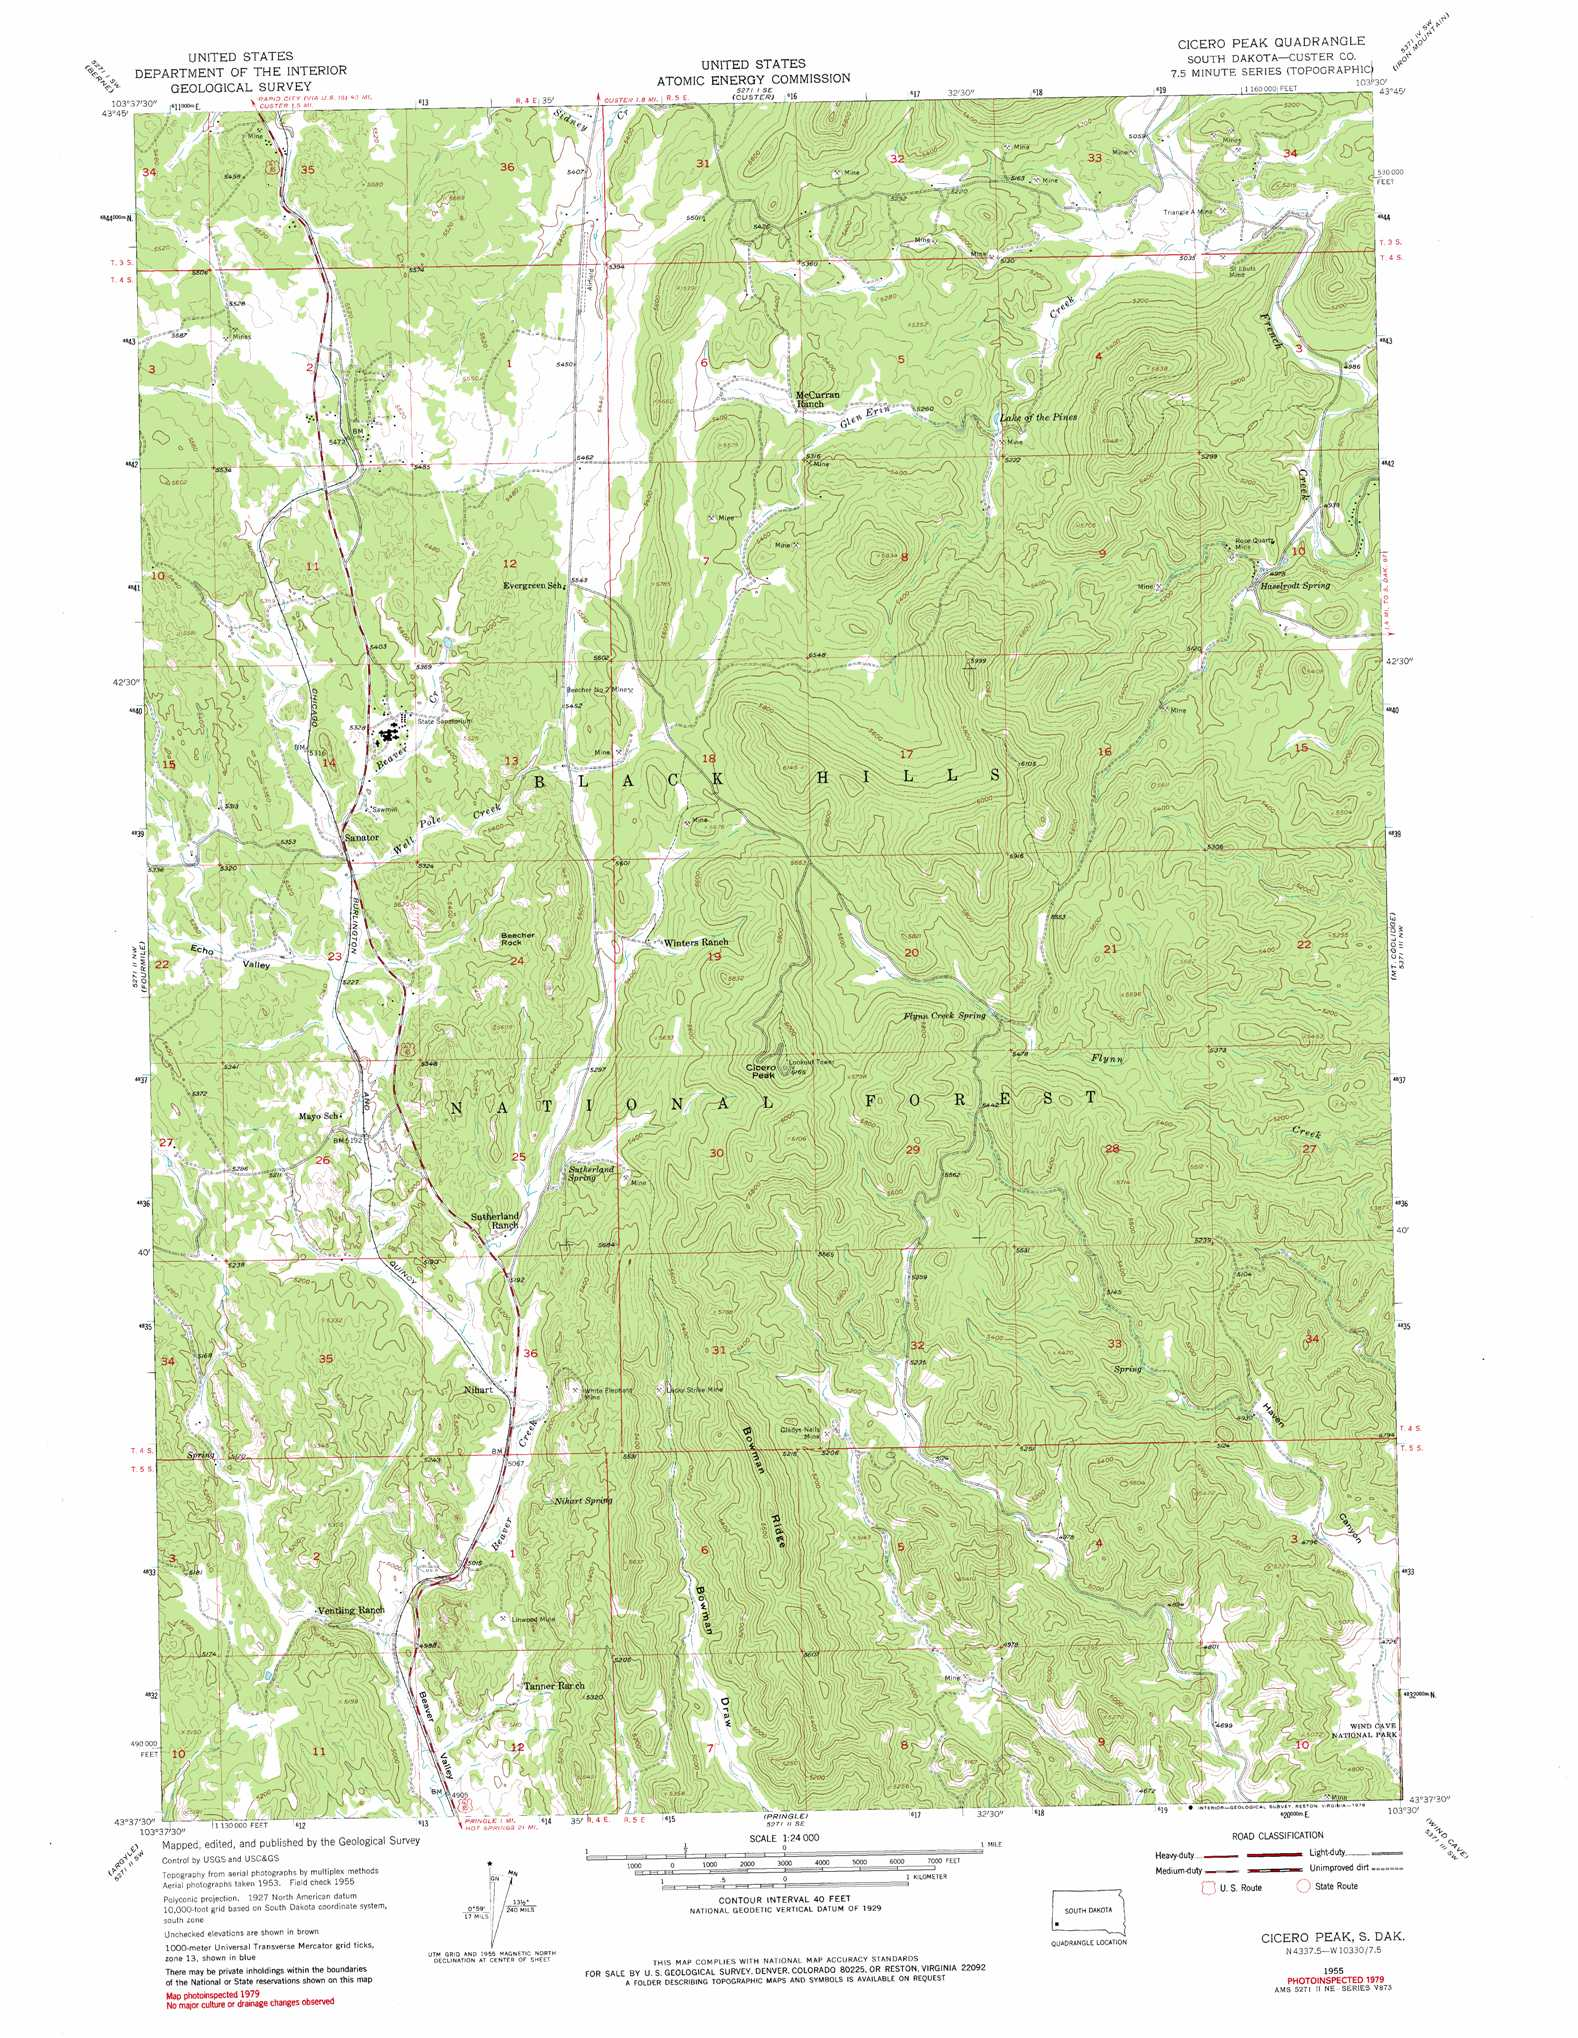 Cicero Peak topographic map SD USGS Topo Quad 43103f5